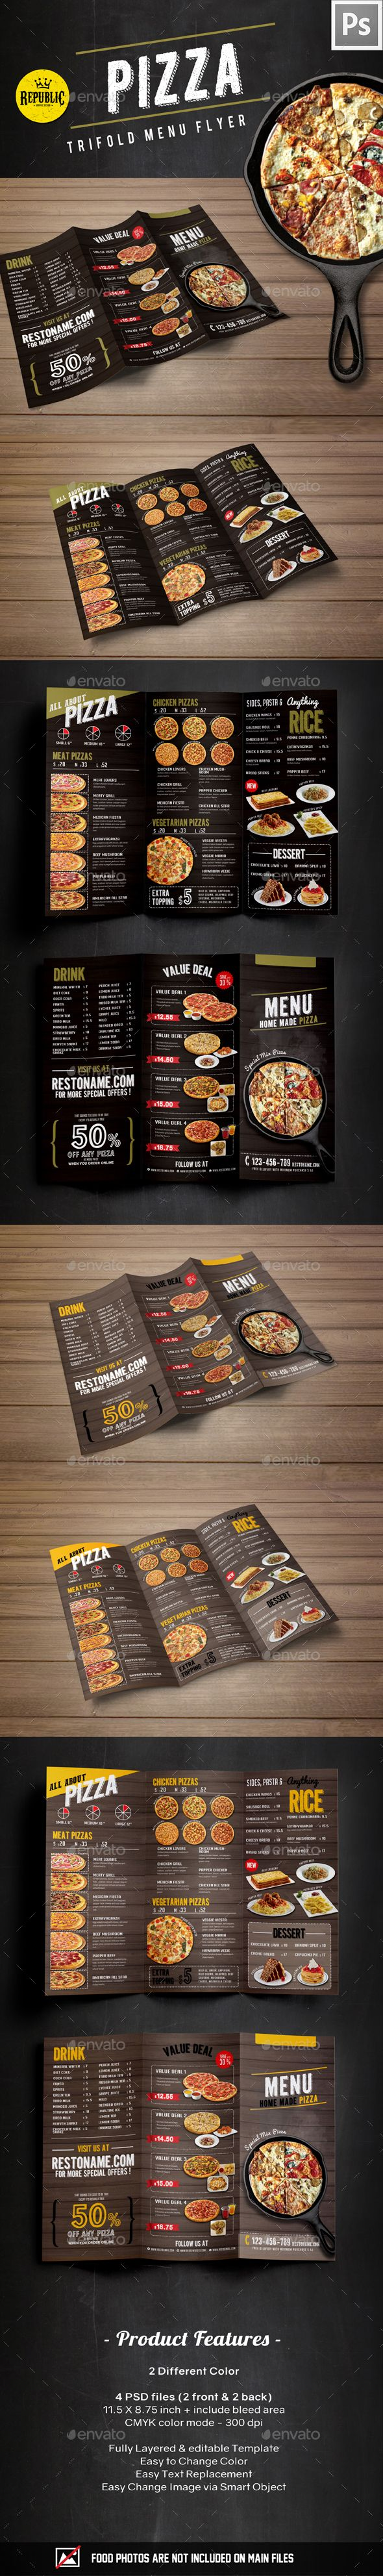 Trifold Pizza Menu — Photoshop PSD #menu #pizza menu • Available here → https://graphicriver.net/item/trifold-pizza-menu/15646337?ref=pxcr